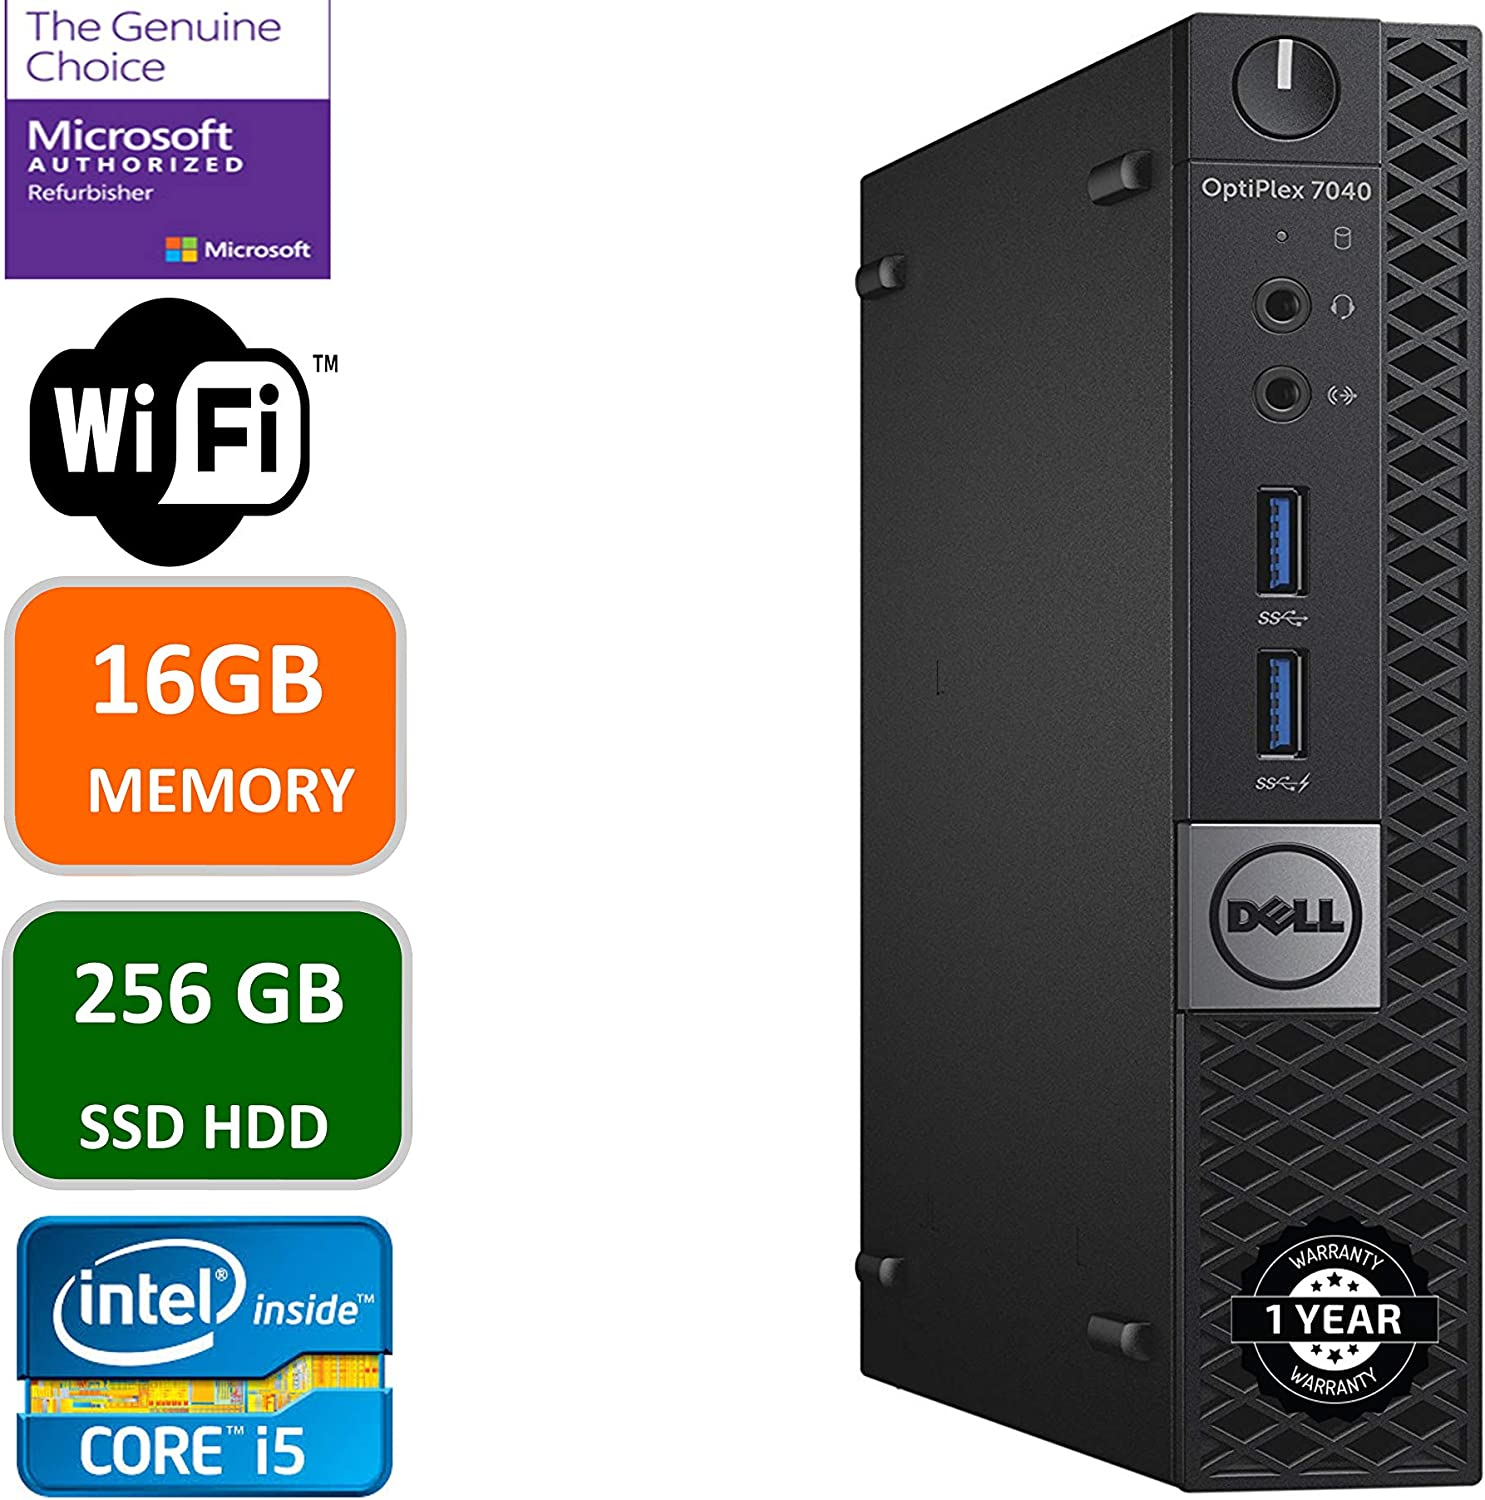 DELL OPTIPLEX 7040 6th Gen Micro Business Desktop Computer, Intel Quad Core i5 6400T up to 2.8GHz, 16G DDR4, 256GB SSD, WiFi,HDMI, DP, Win 10 64-Bit Supports EN/ES/FR(CI5)(Renewed)